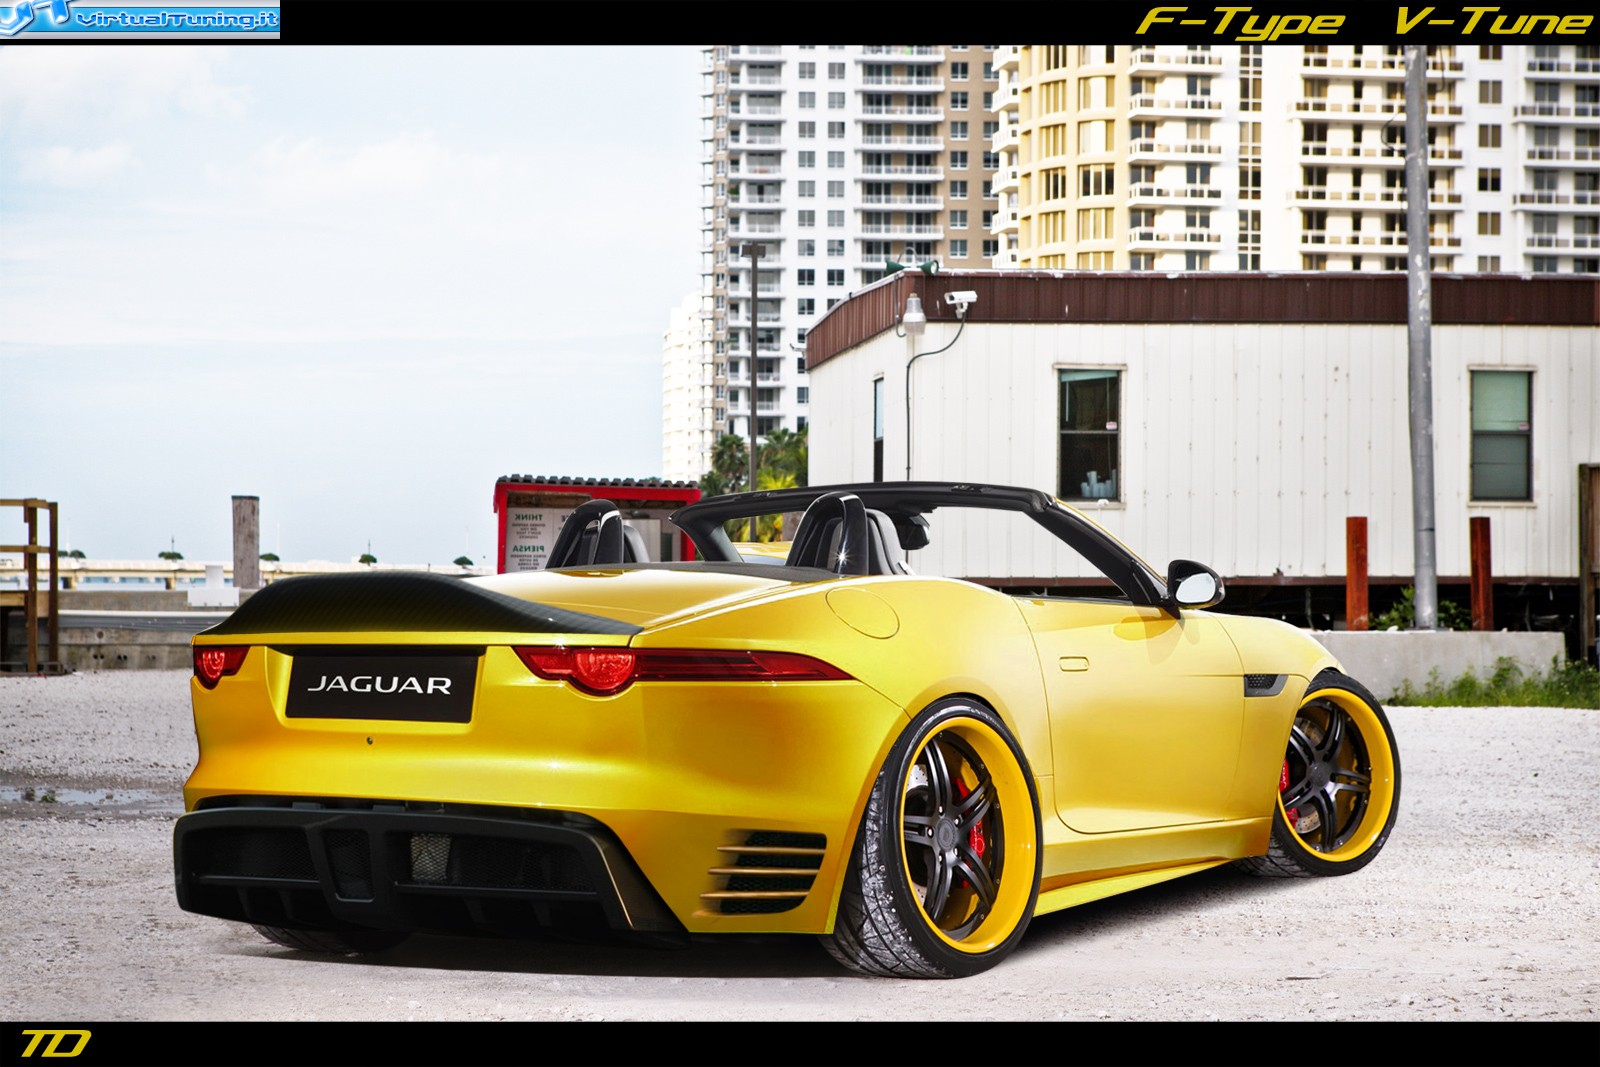 VirtualTuning JAGUAR F-Type V-Tune by